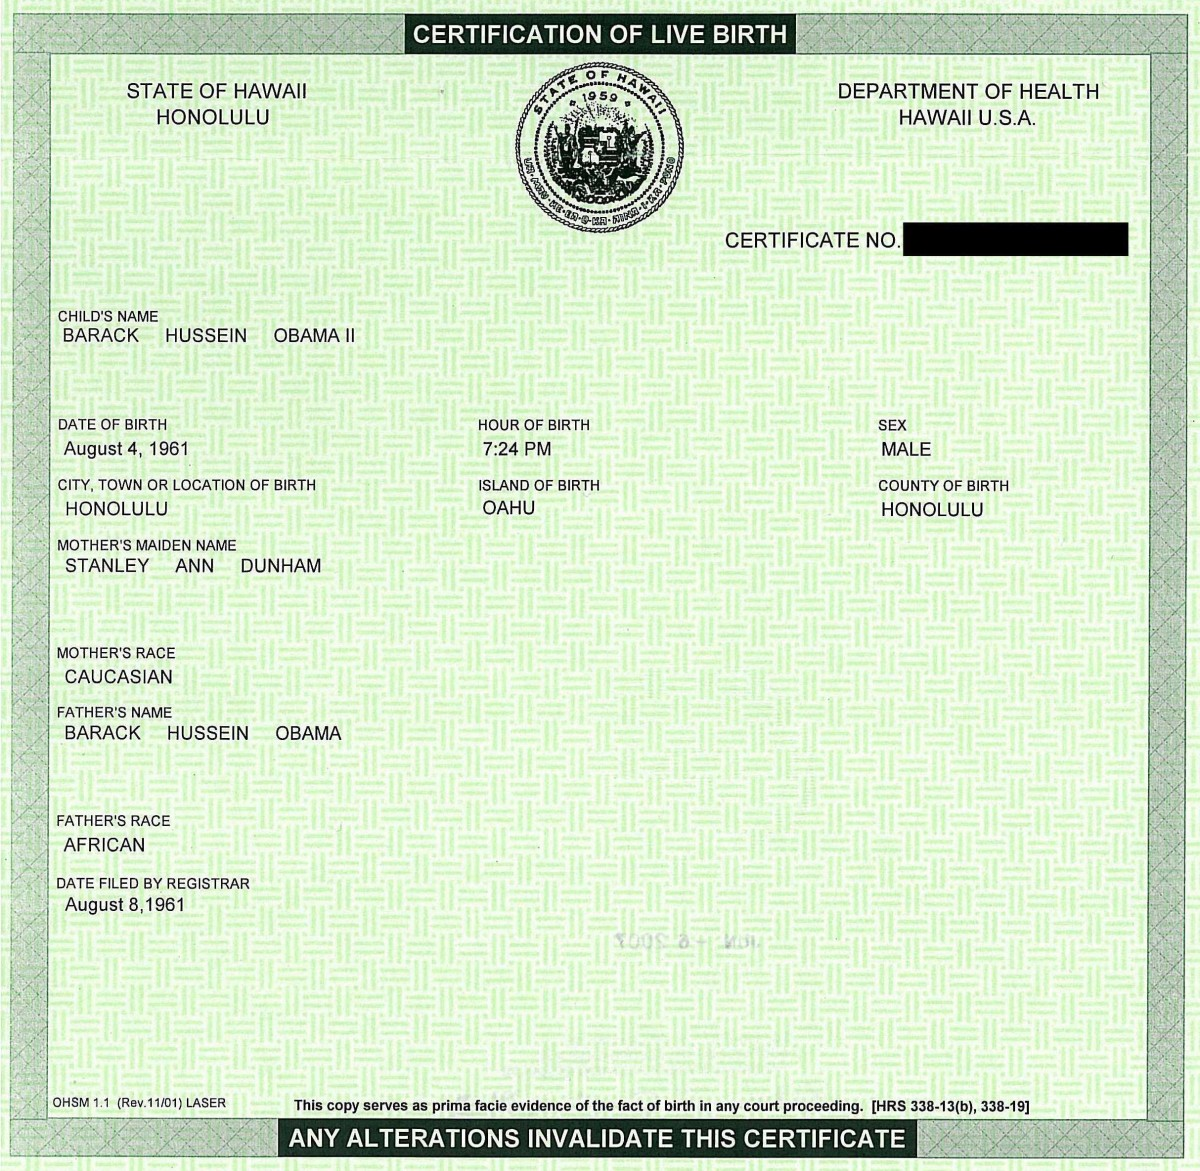 SSA will accept only Original or Certified copy of a birth certificate. Most US birth certificates, including Hawaii for instance, has security features like raised lettering, stamp, and glowing lines under blue light on them to halt counterfeiting.